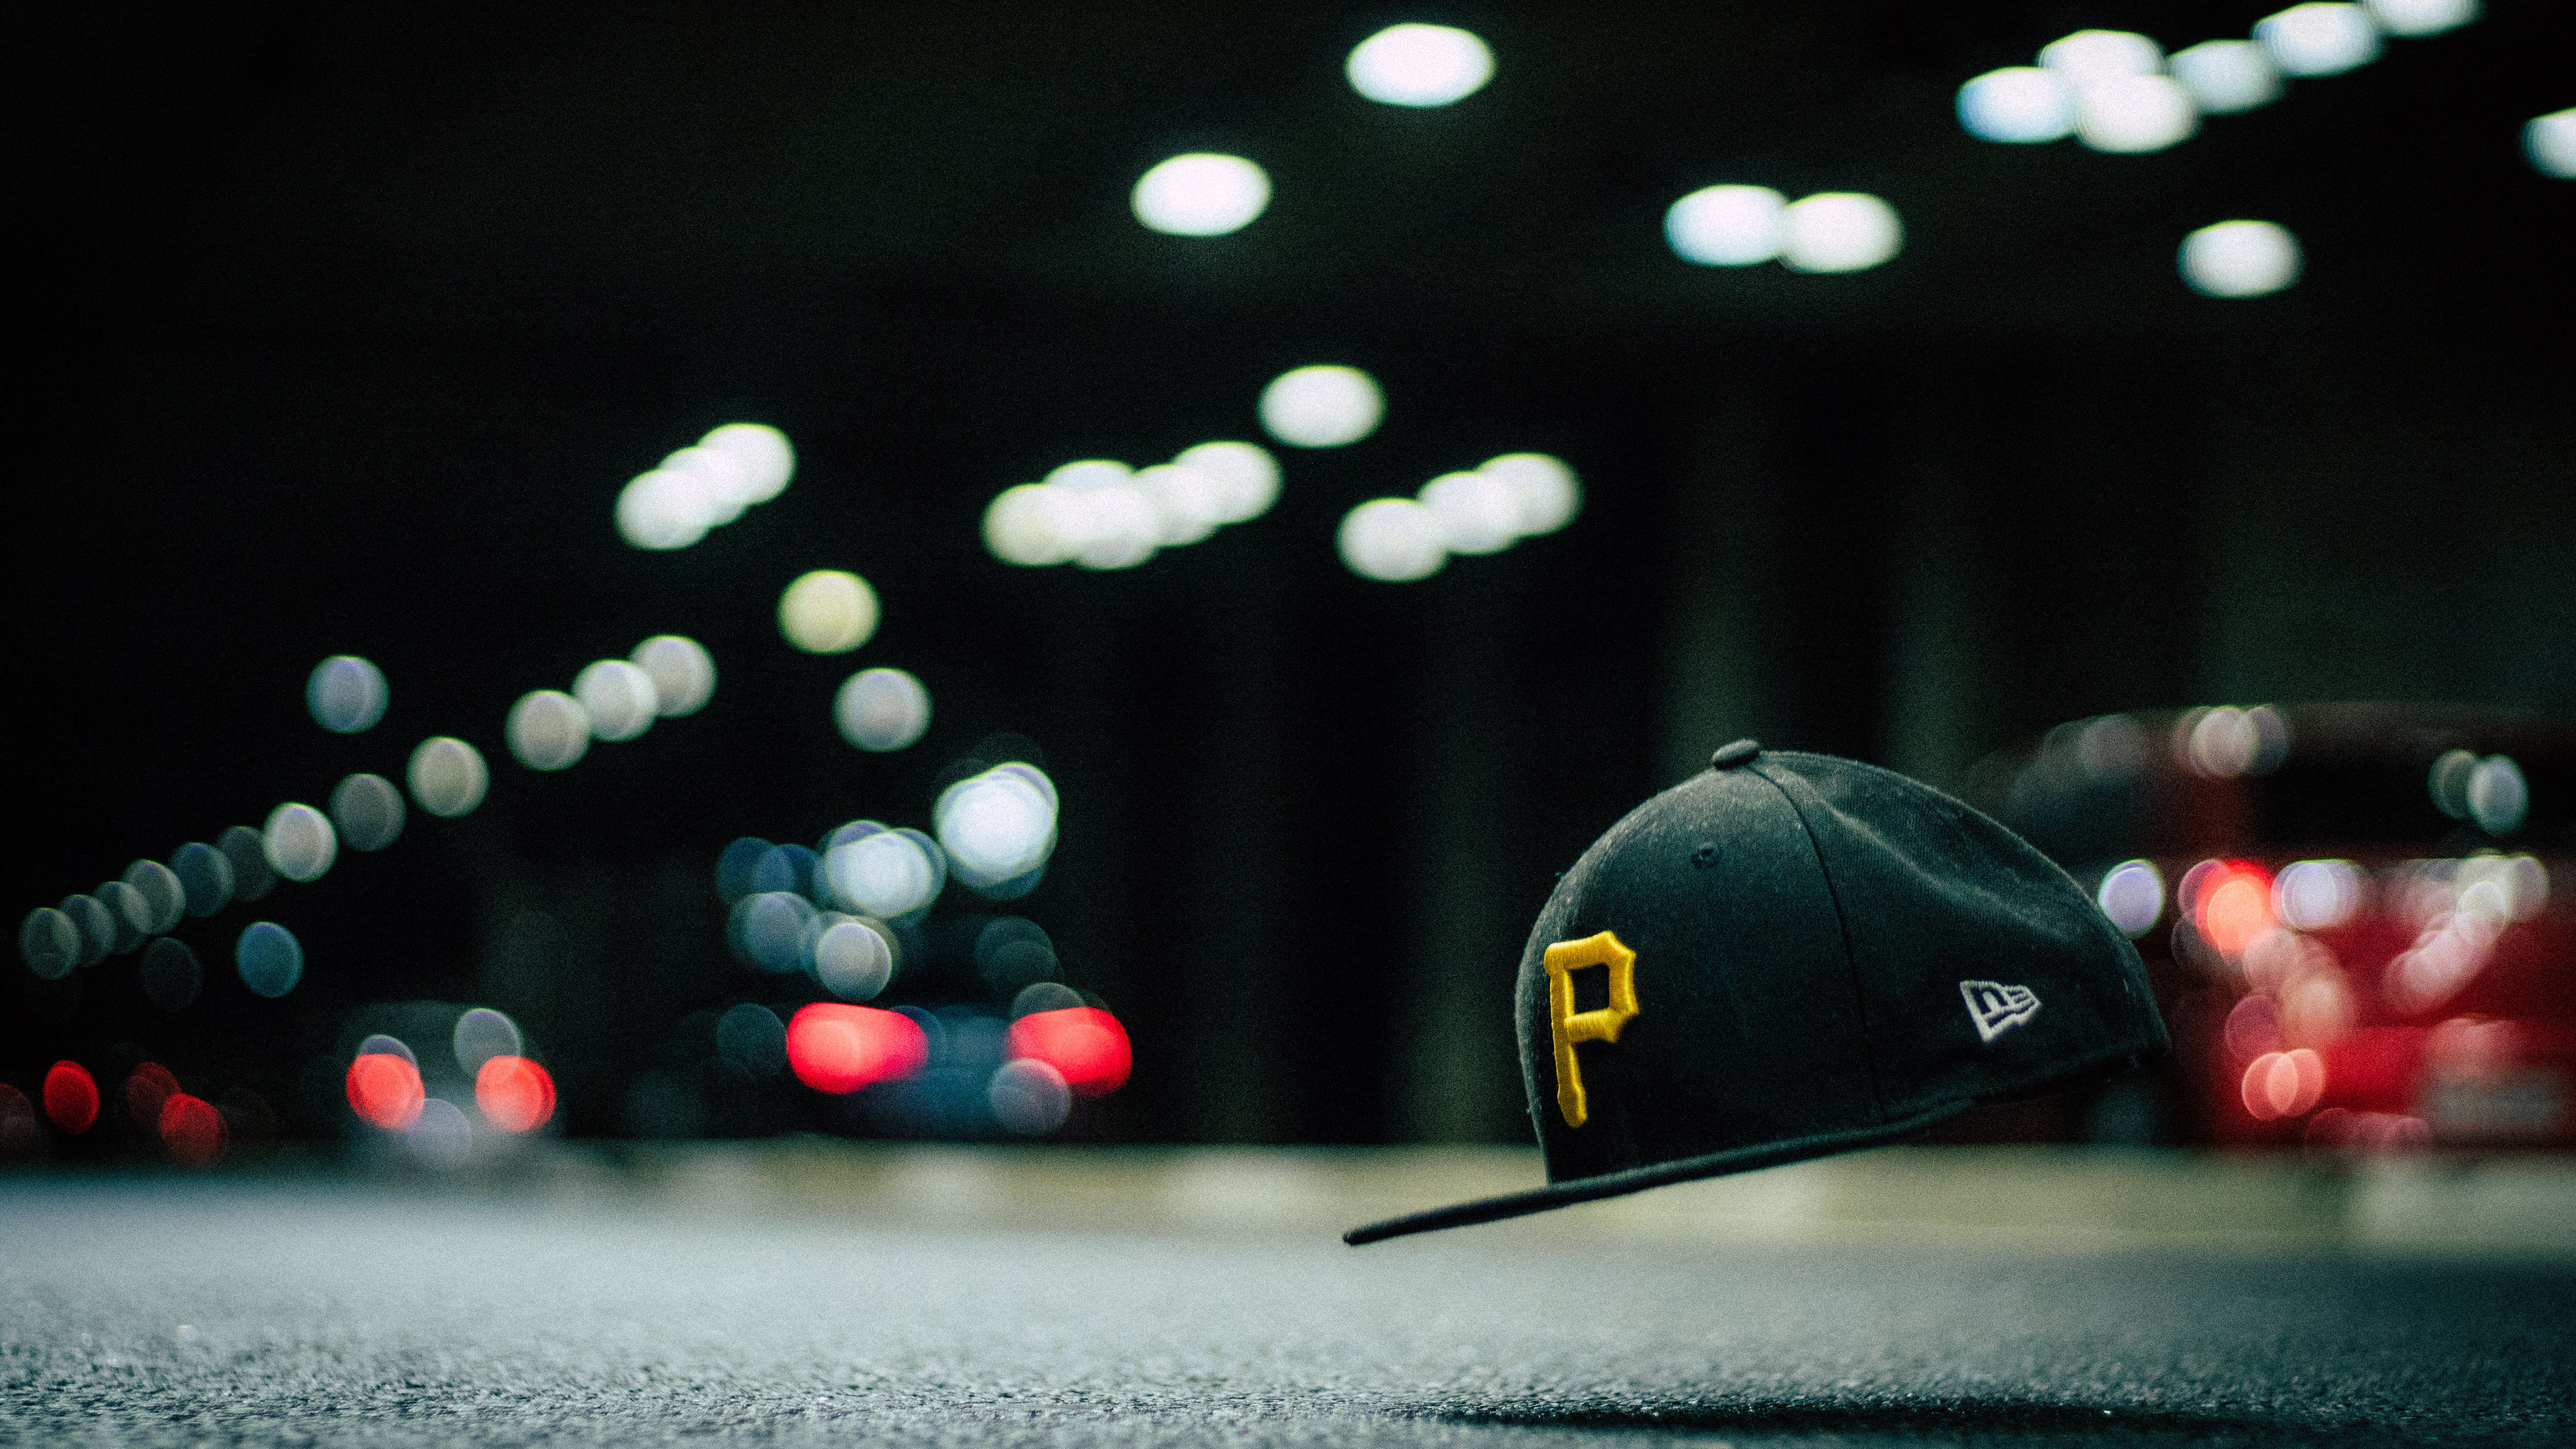 Black and Yellow P Cap Hanging in the Air